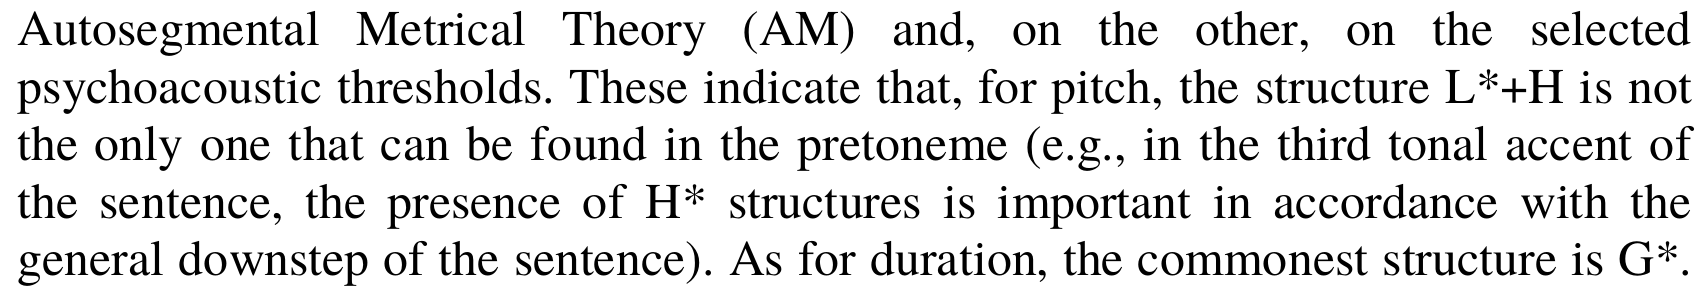 A couple of lines from an academic paper where compound tones appear  as part of sentences. The text uses the standard typesetting of ToBI tones,  which does not blend into the surrounding text